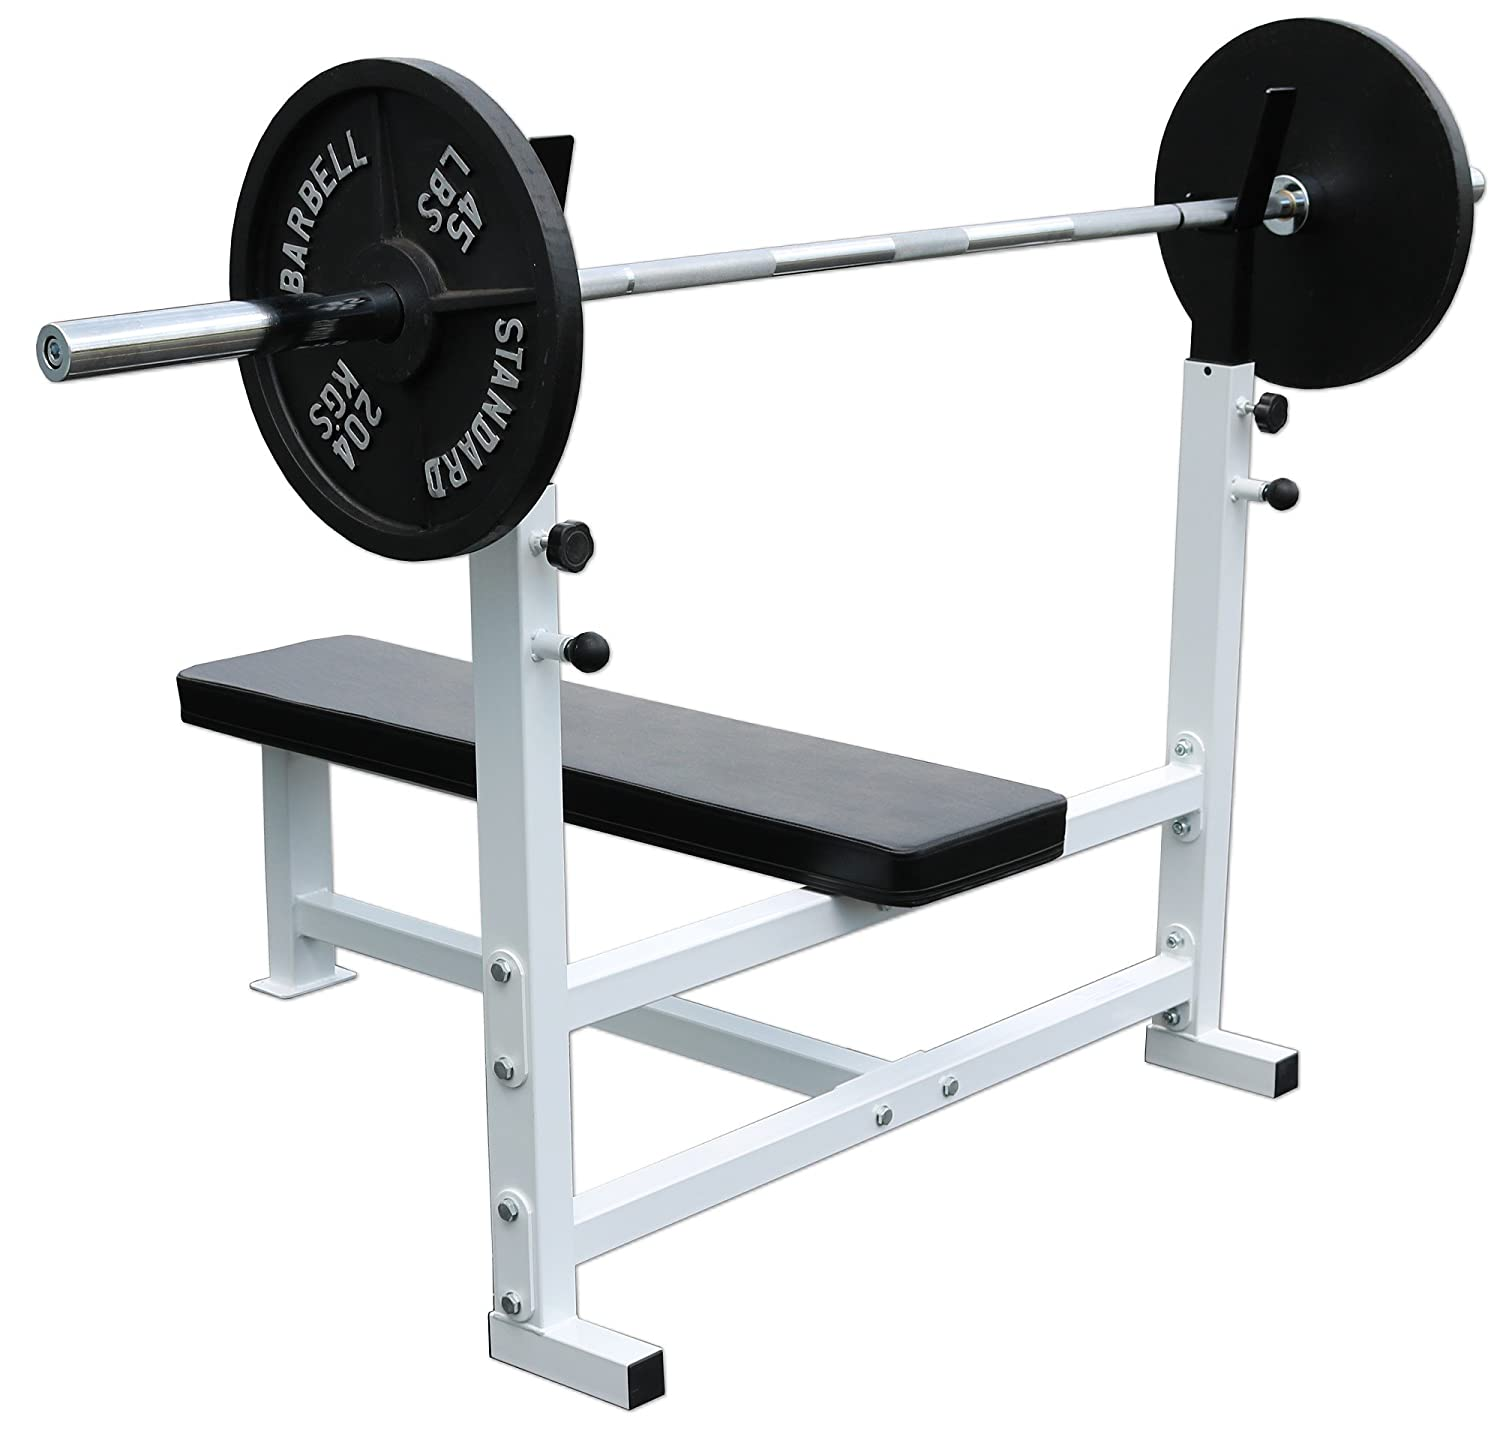 equipment bench gym weight york home machine product press barbell bar